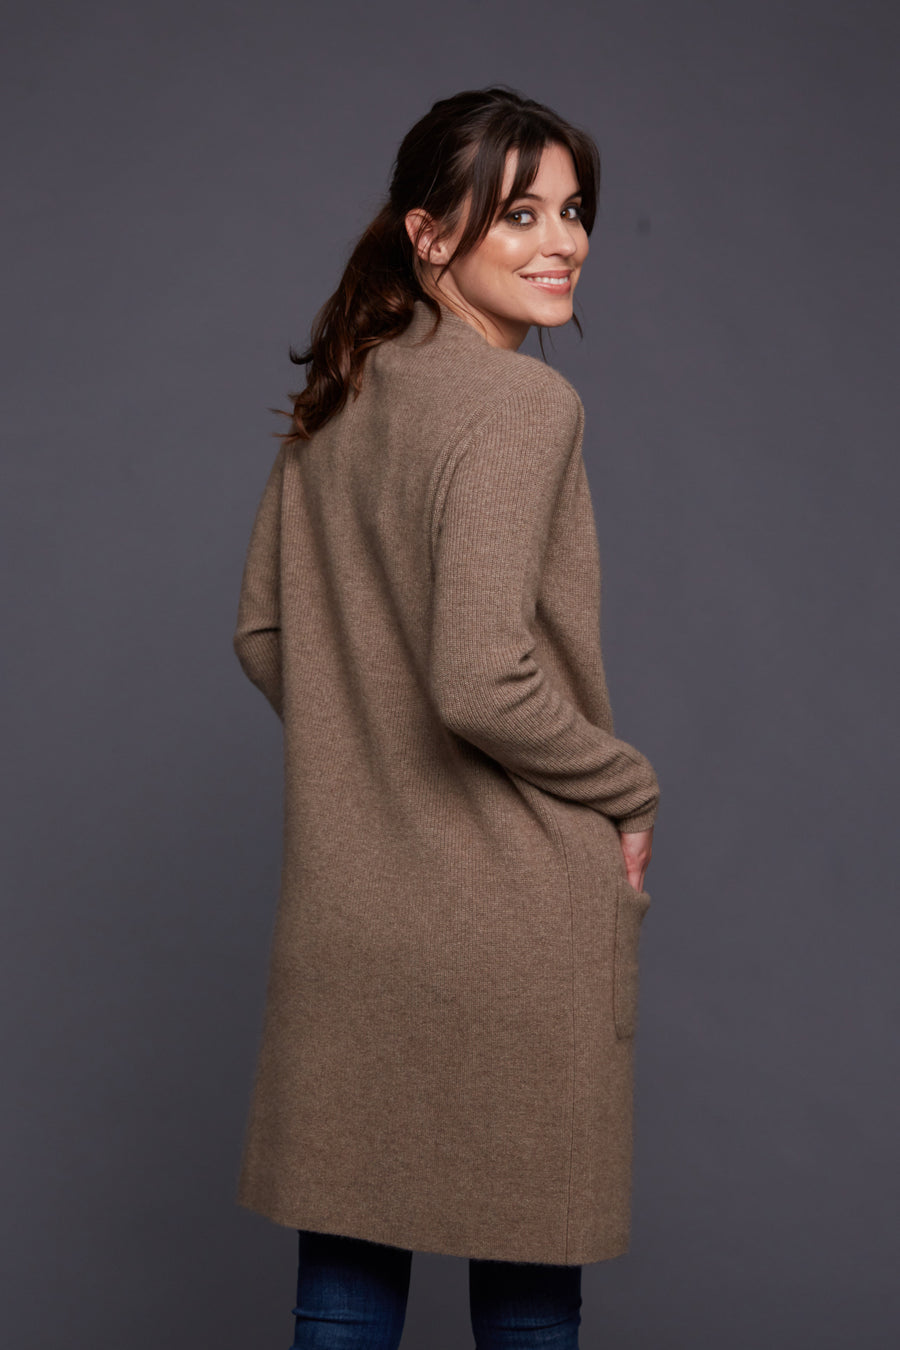 pine cashmere morgan women's 100% pure organic cashmere cardigan sweater in brown